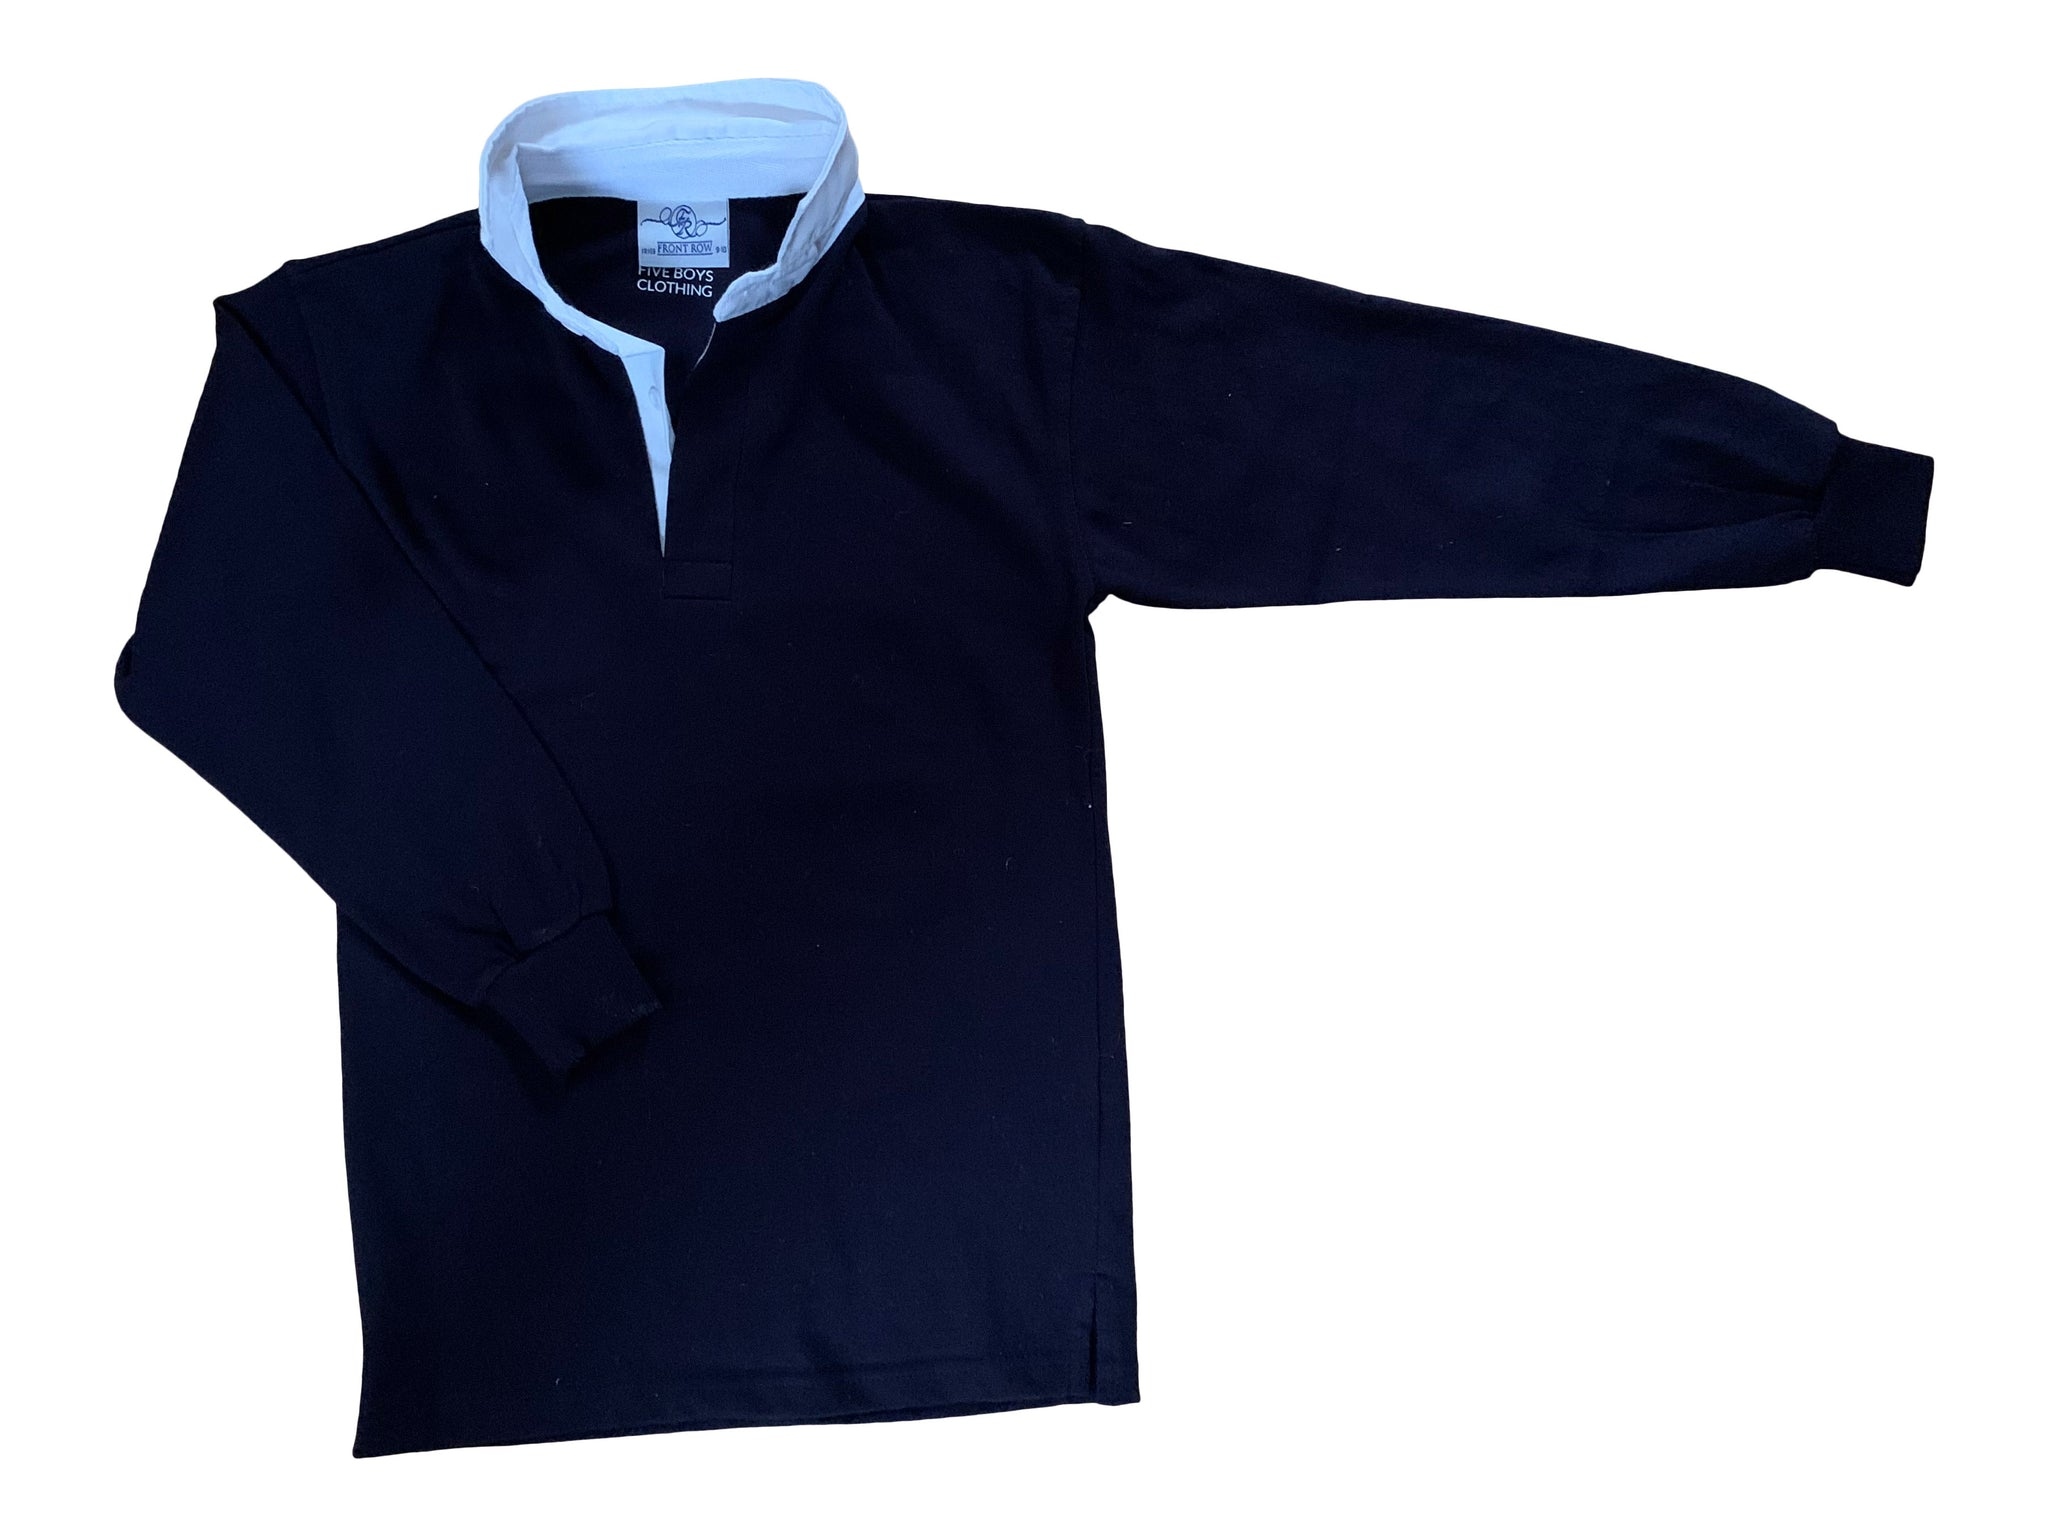 Rugby Shirt For Boys in Royal Blue and Navy